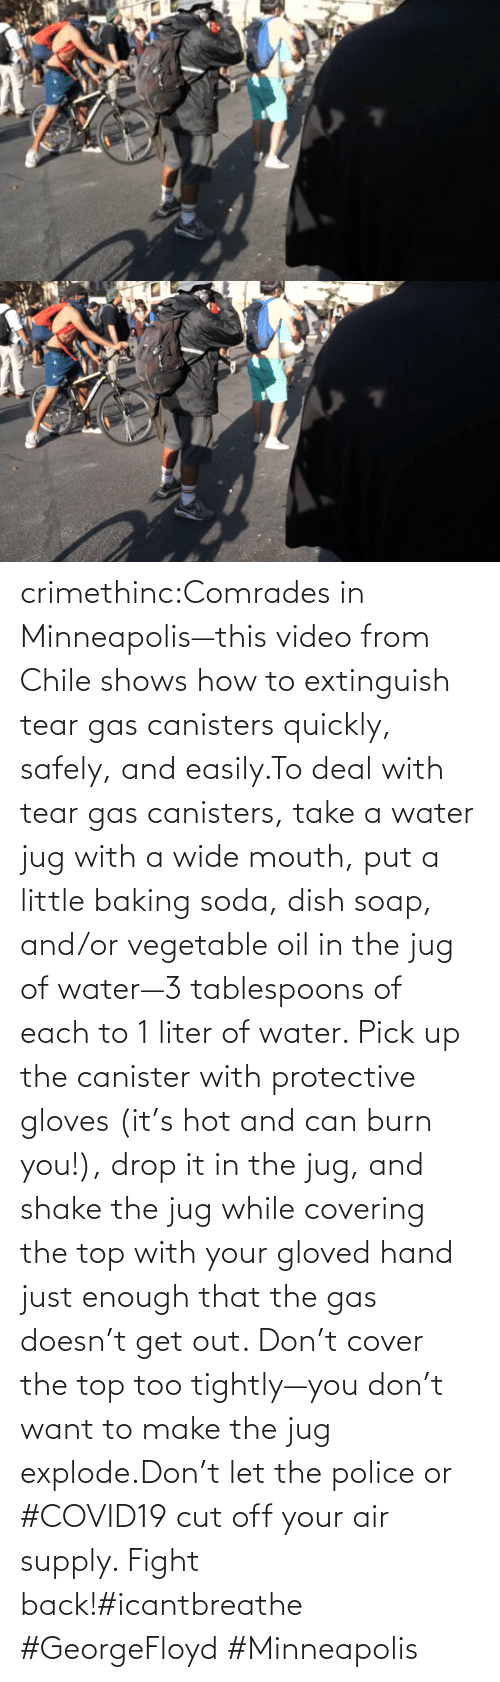 Dish: crimethinc:Comrades in Minneapolis—this video from Chile shows how to extinguish tear gas canisters quickly, safely, and easily.To deal with tear gas canisters, take a water jug with a wide mouth, put a little baking soda, dish soap, and/or vegetable oil in the jug of water—3 tablespoons of each to 1 liter of water. Pick up the canister with protective gloves (it's hot and can burn you!), drop it in the jug, and shake the jug while covering the top with your gloved hand just enough that the gas doesn't get out. Don't cover the top too tightly—you don't want to make the jug explode.Don't let the police or #COVID19 cut off your air supply. Fight back!#icantbreathe #GeorgeFloyd #Minneapolis